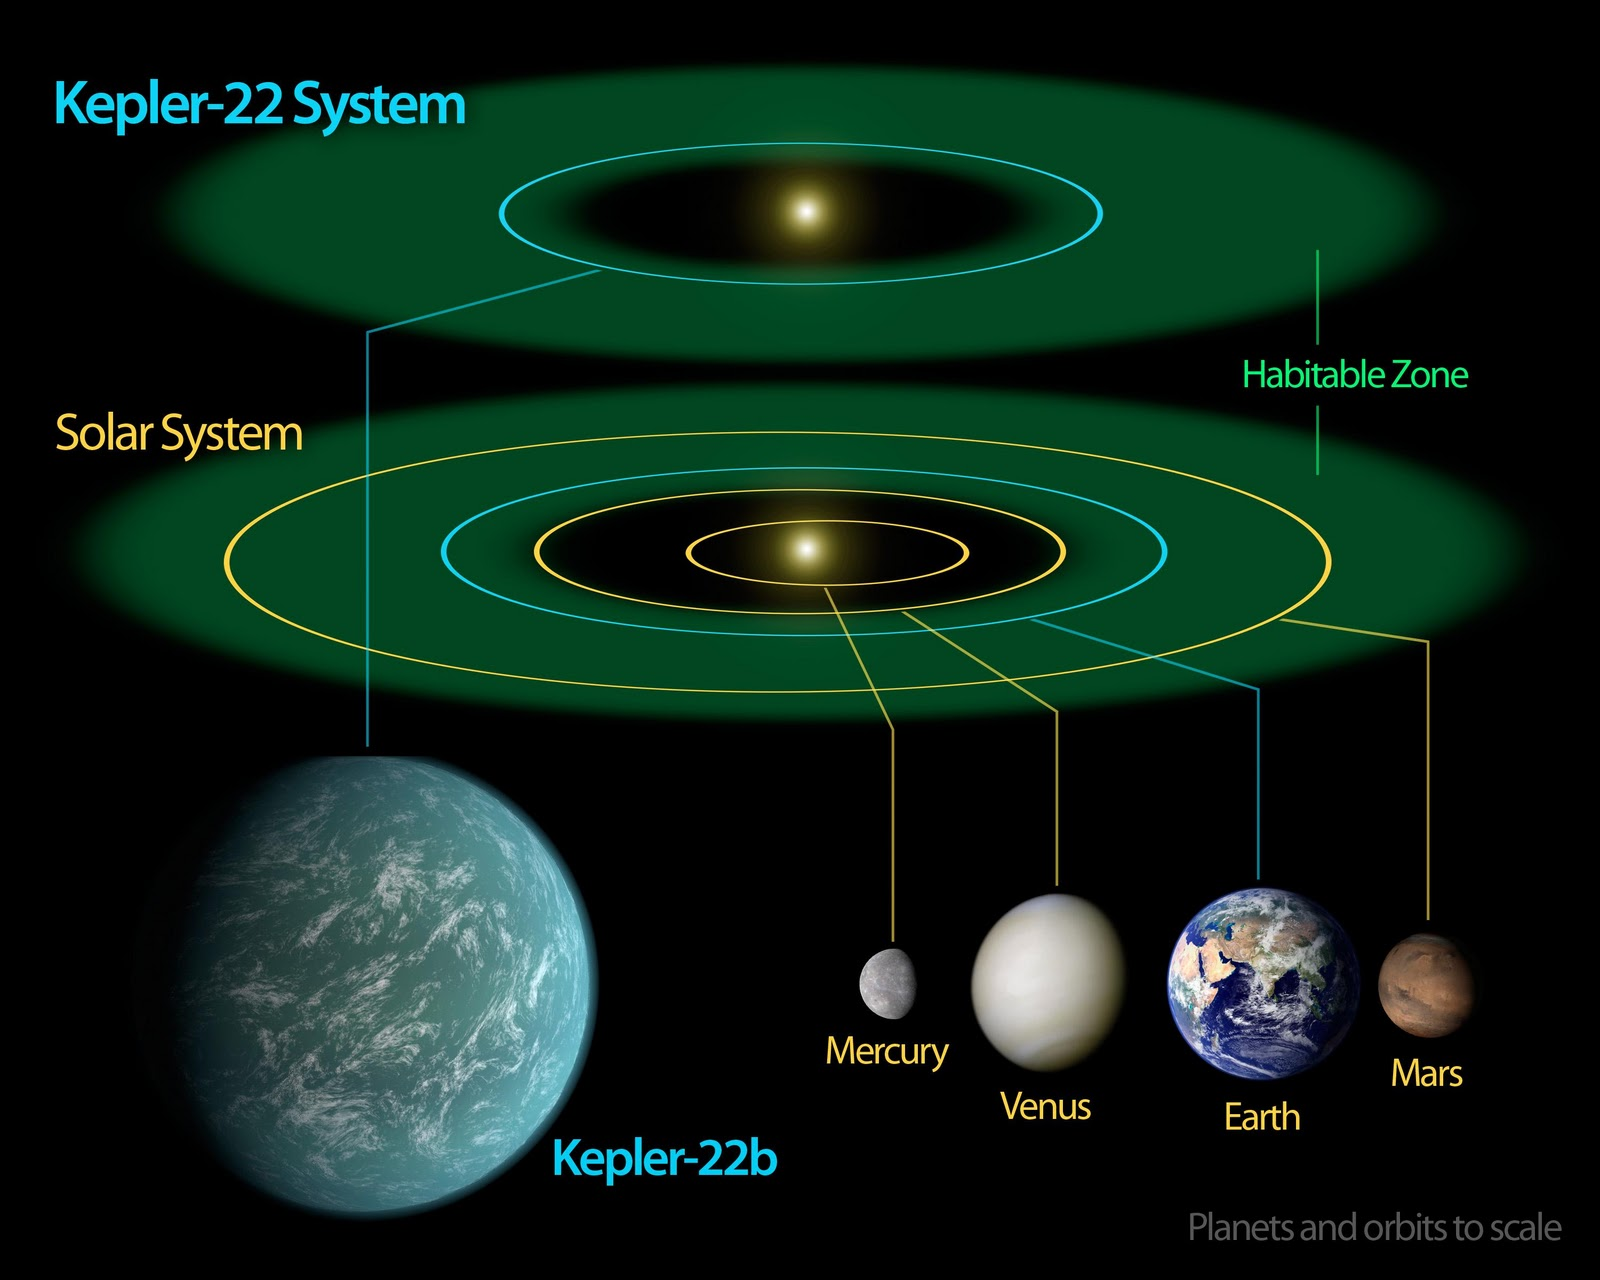 Orbiter Ch Space News  Nasa U0026 39 S Kepler Mission Confirms Its First Planet In Habitable Zone Of Sun